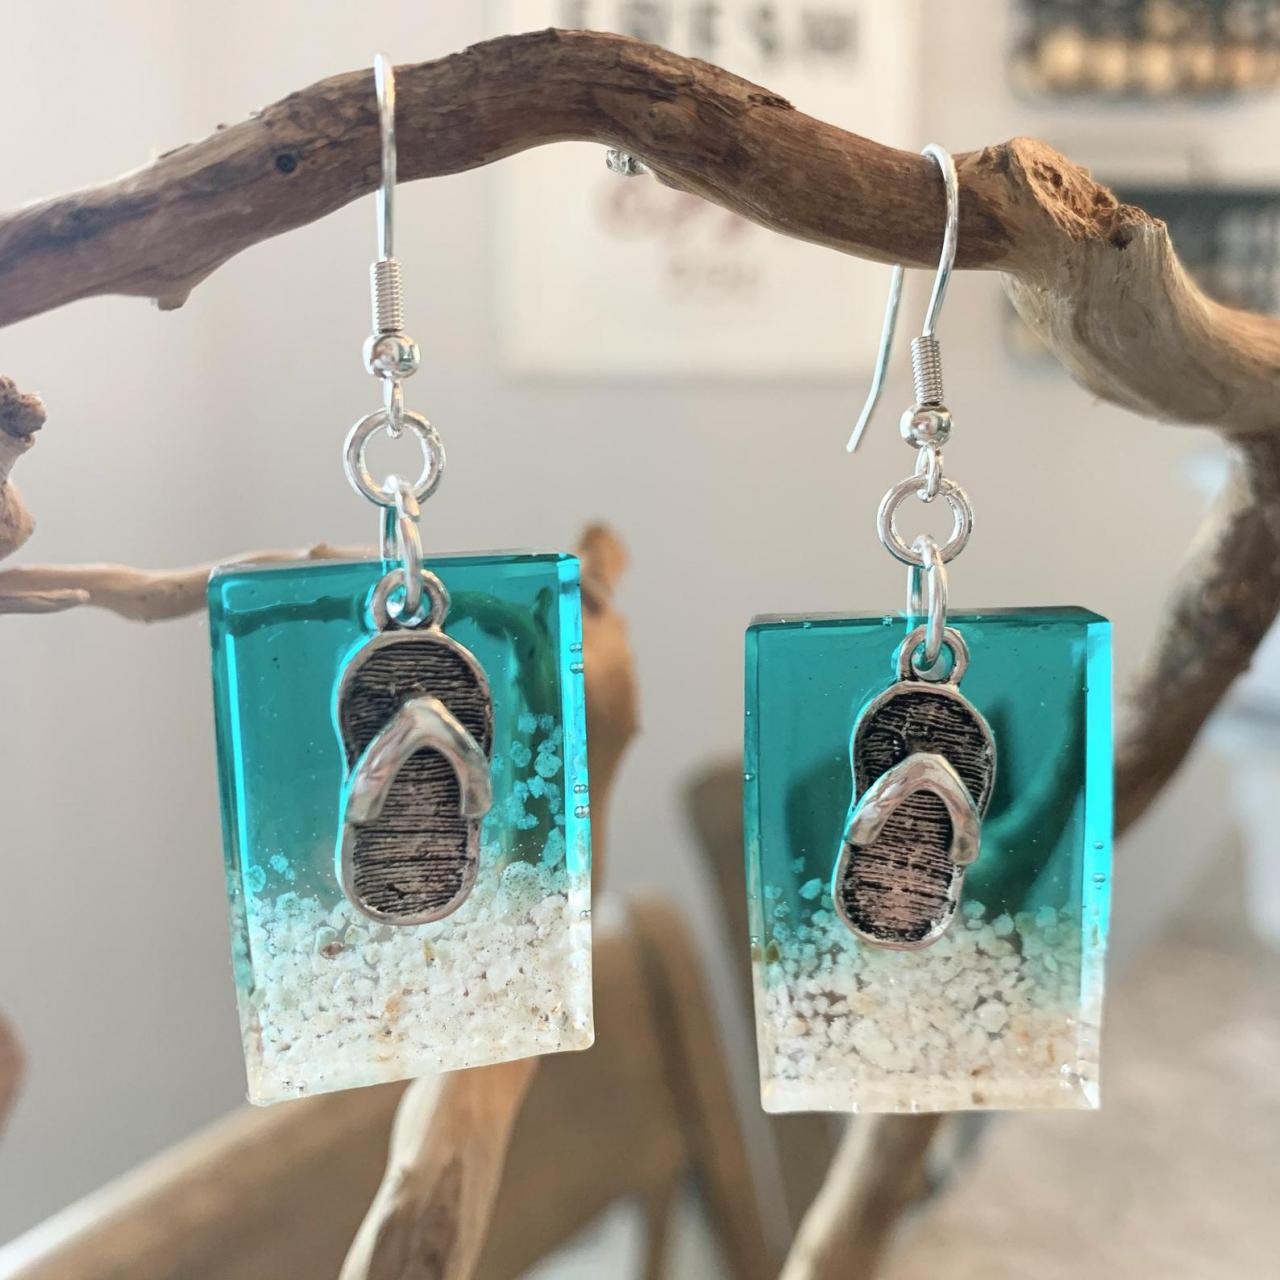 Beach jewelry,resin art,sand,ocean,waves,tropical,beach earrings,beach lover jewelry,jewelry for women,grad gift,birthday,sandal charm,vaca